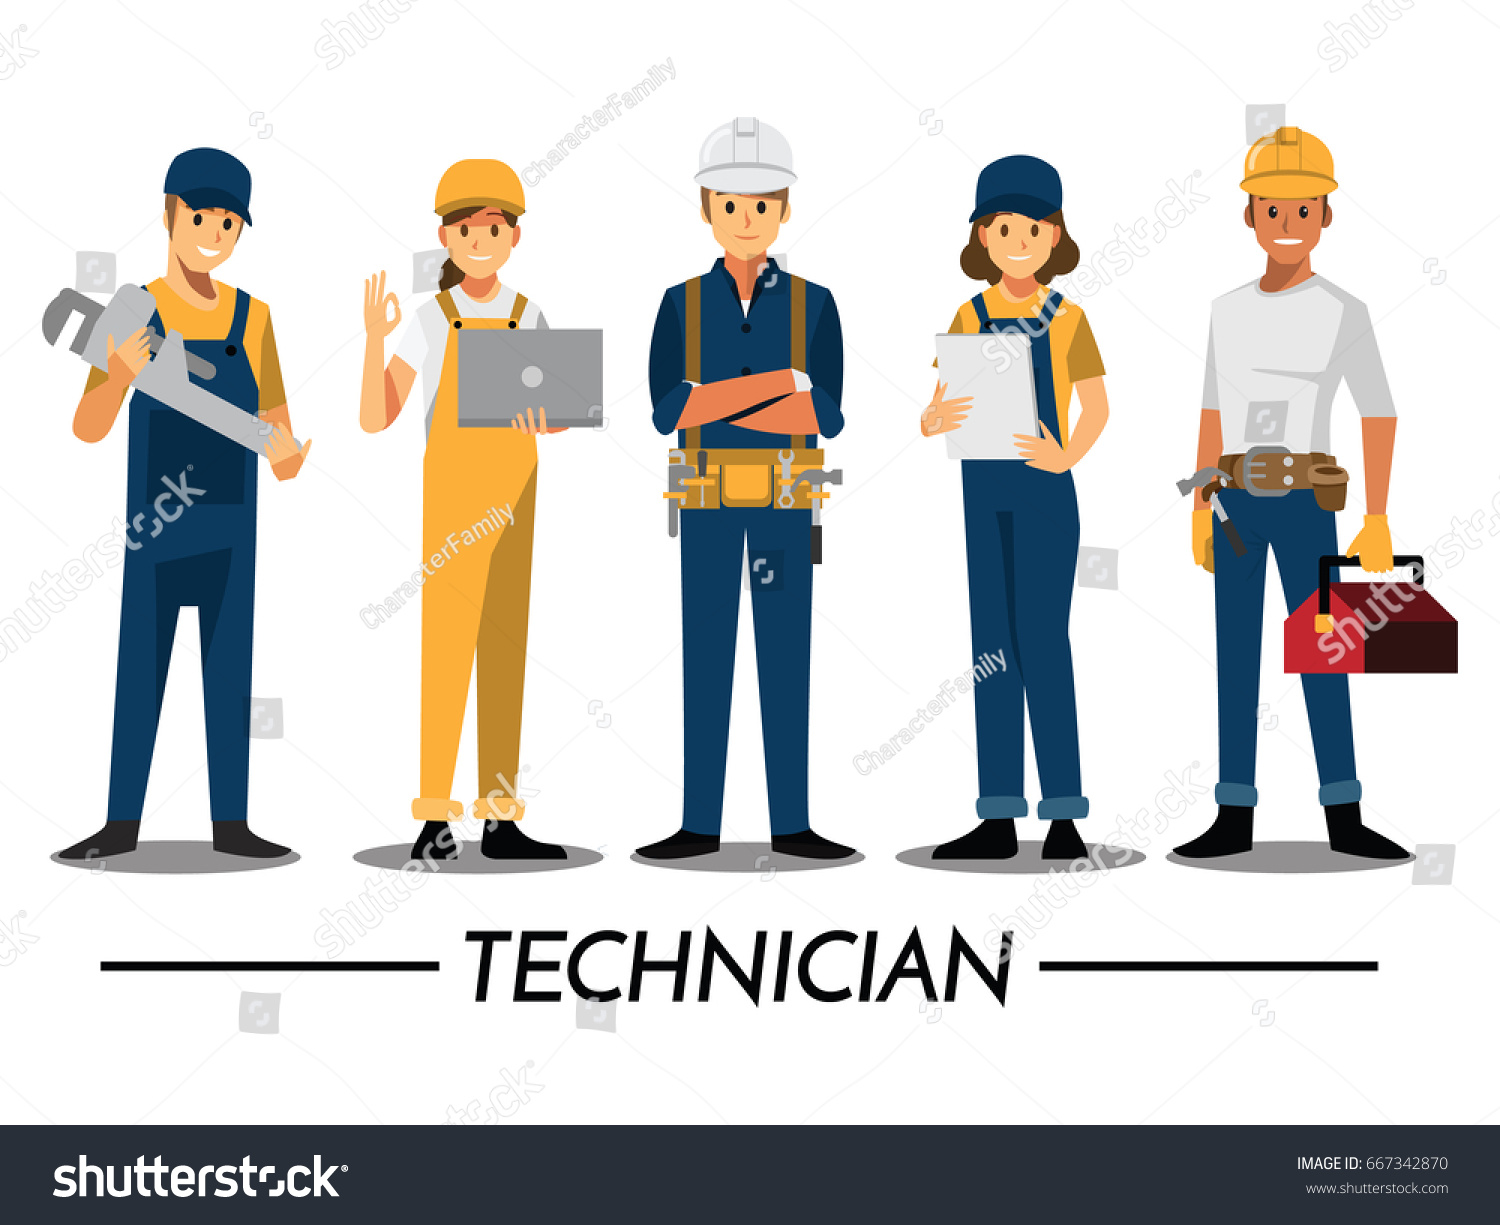 Image result for technician